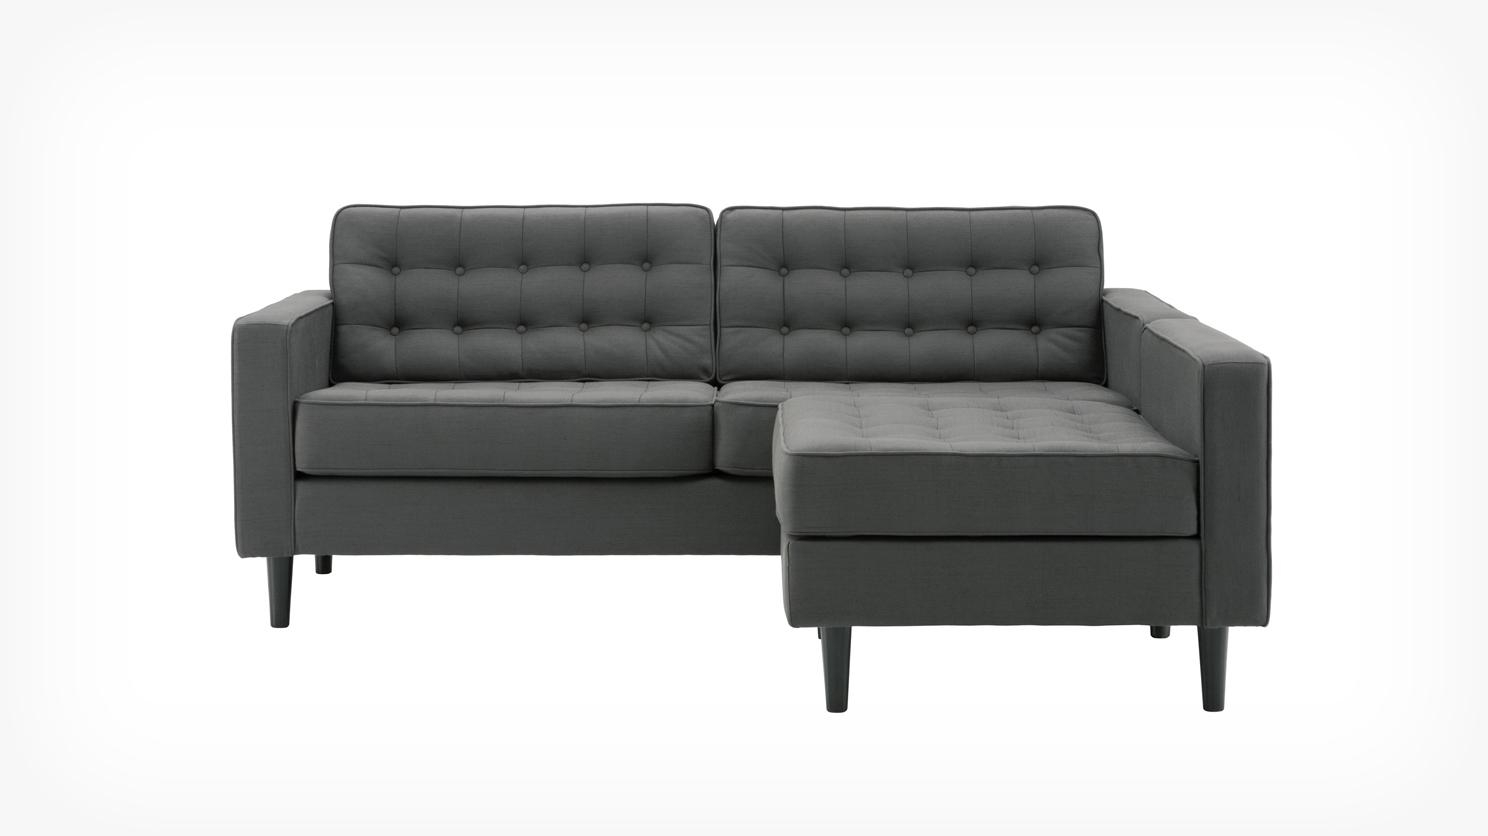 Eq3 | Reverie Apartment 2 Piece Sectional Sofa With Chaise – Fabric With 2 Piece Sofas (View 19 of 20)